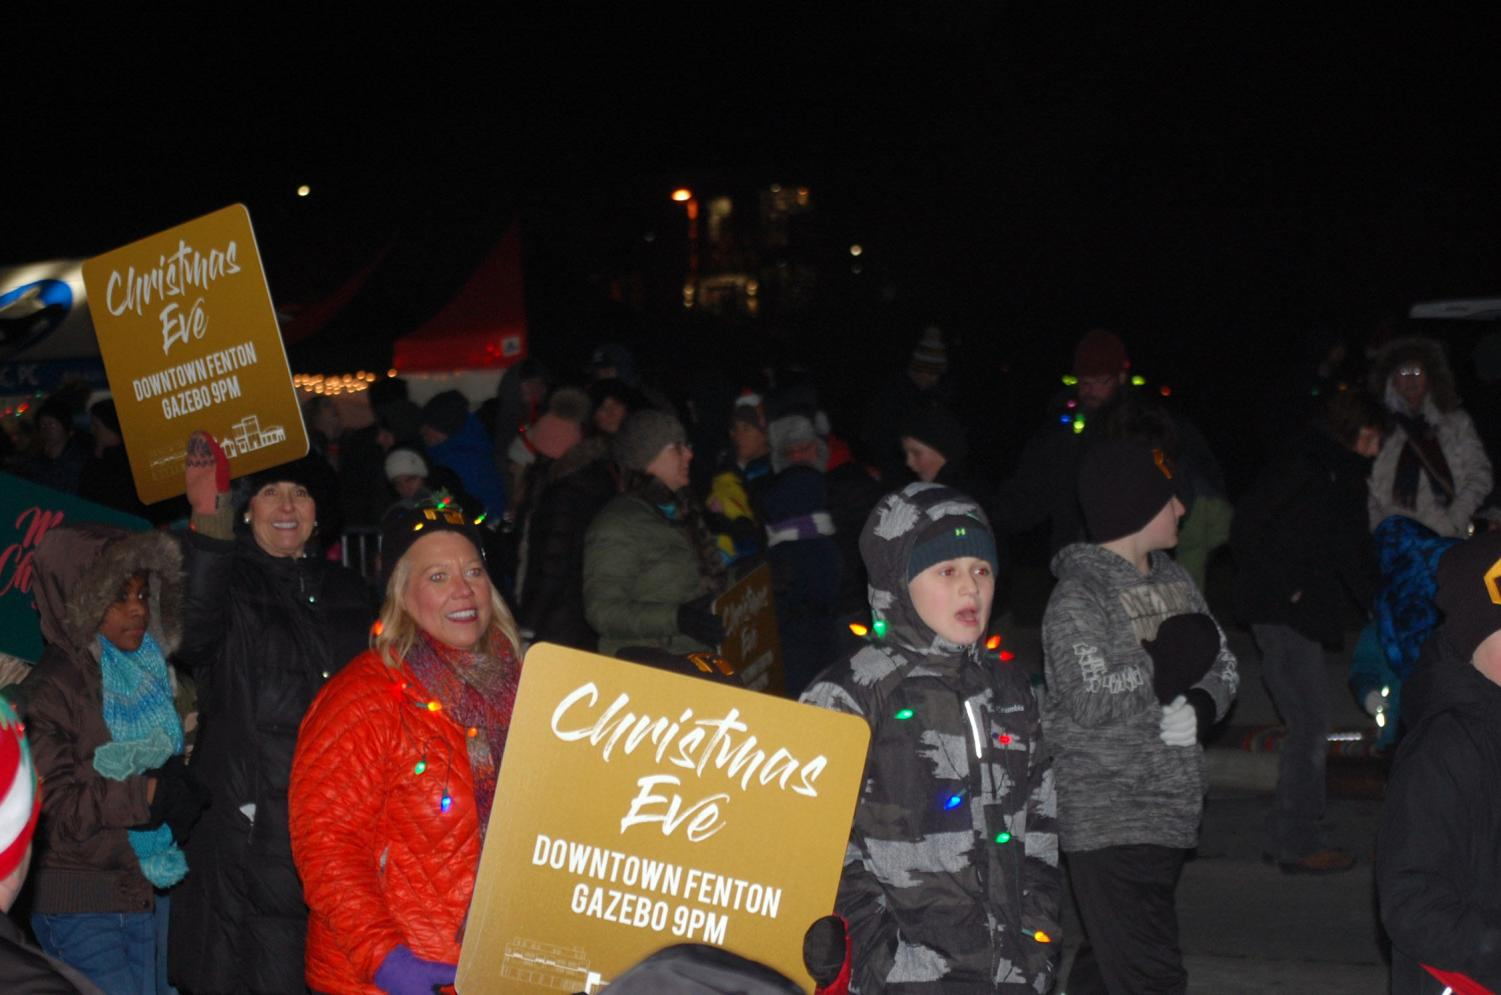 Fenton residents participate and walk in the parade. On Dec. 7, Jinglefest was held in downtown Fenton.